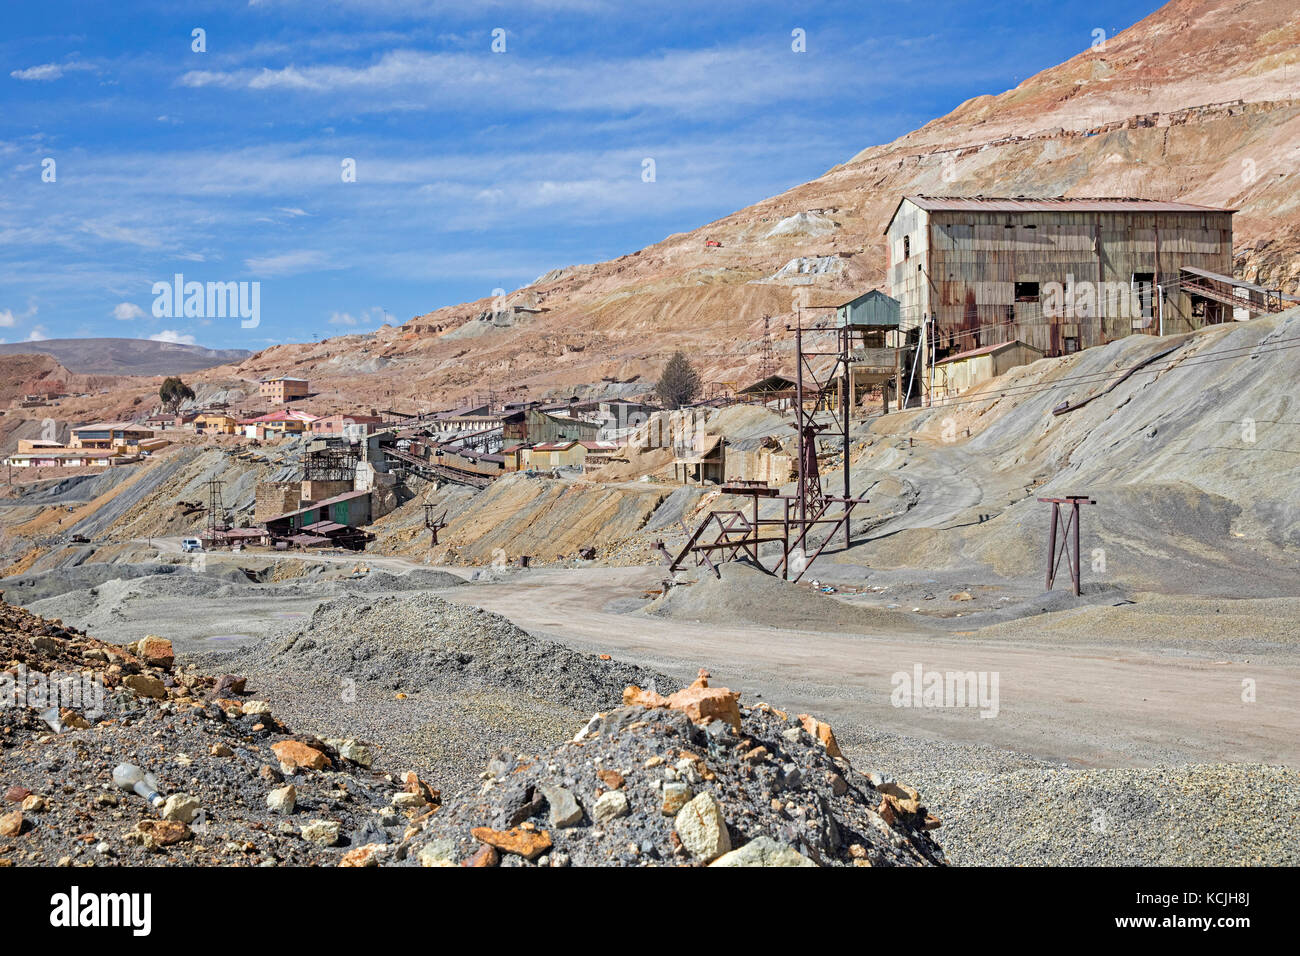 Mining buildings of silver mine on the Cerro Rico de Potosi, Tomás Frías, Bolivia - Stock Image